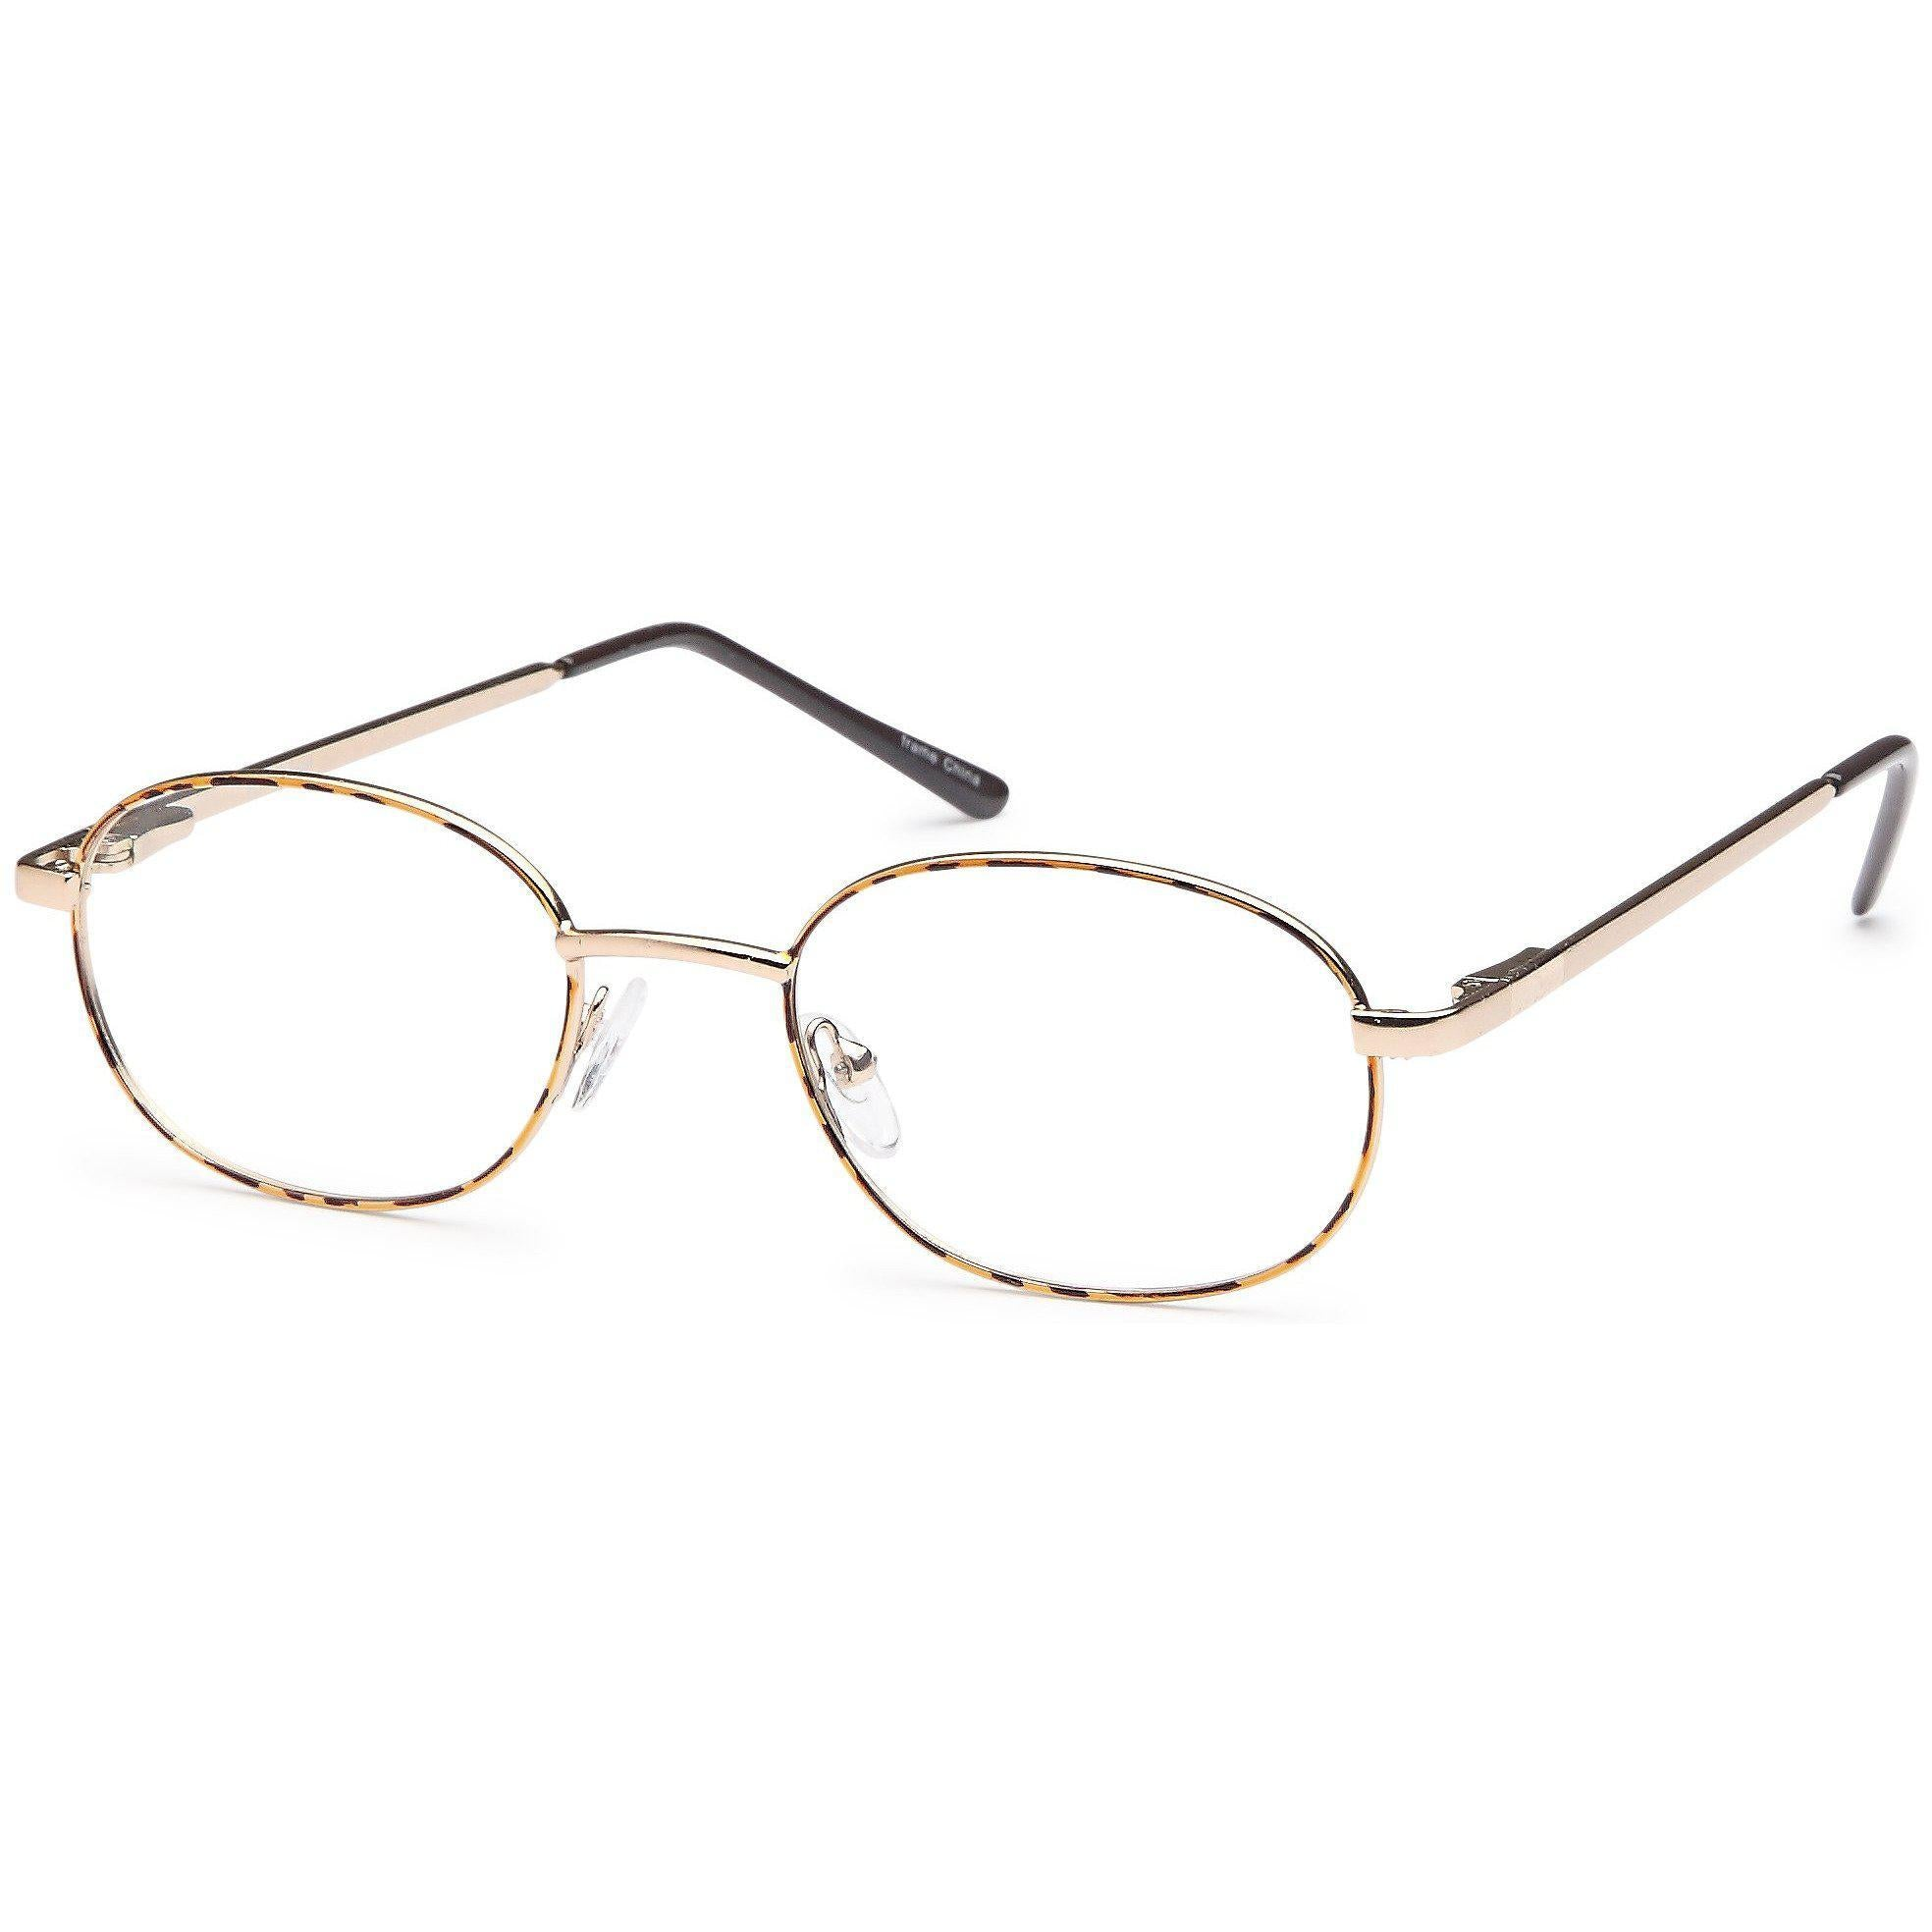 Appletree Prescription Glasses PEACH Eyeglasses Frame